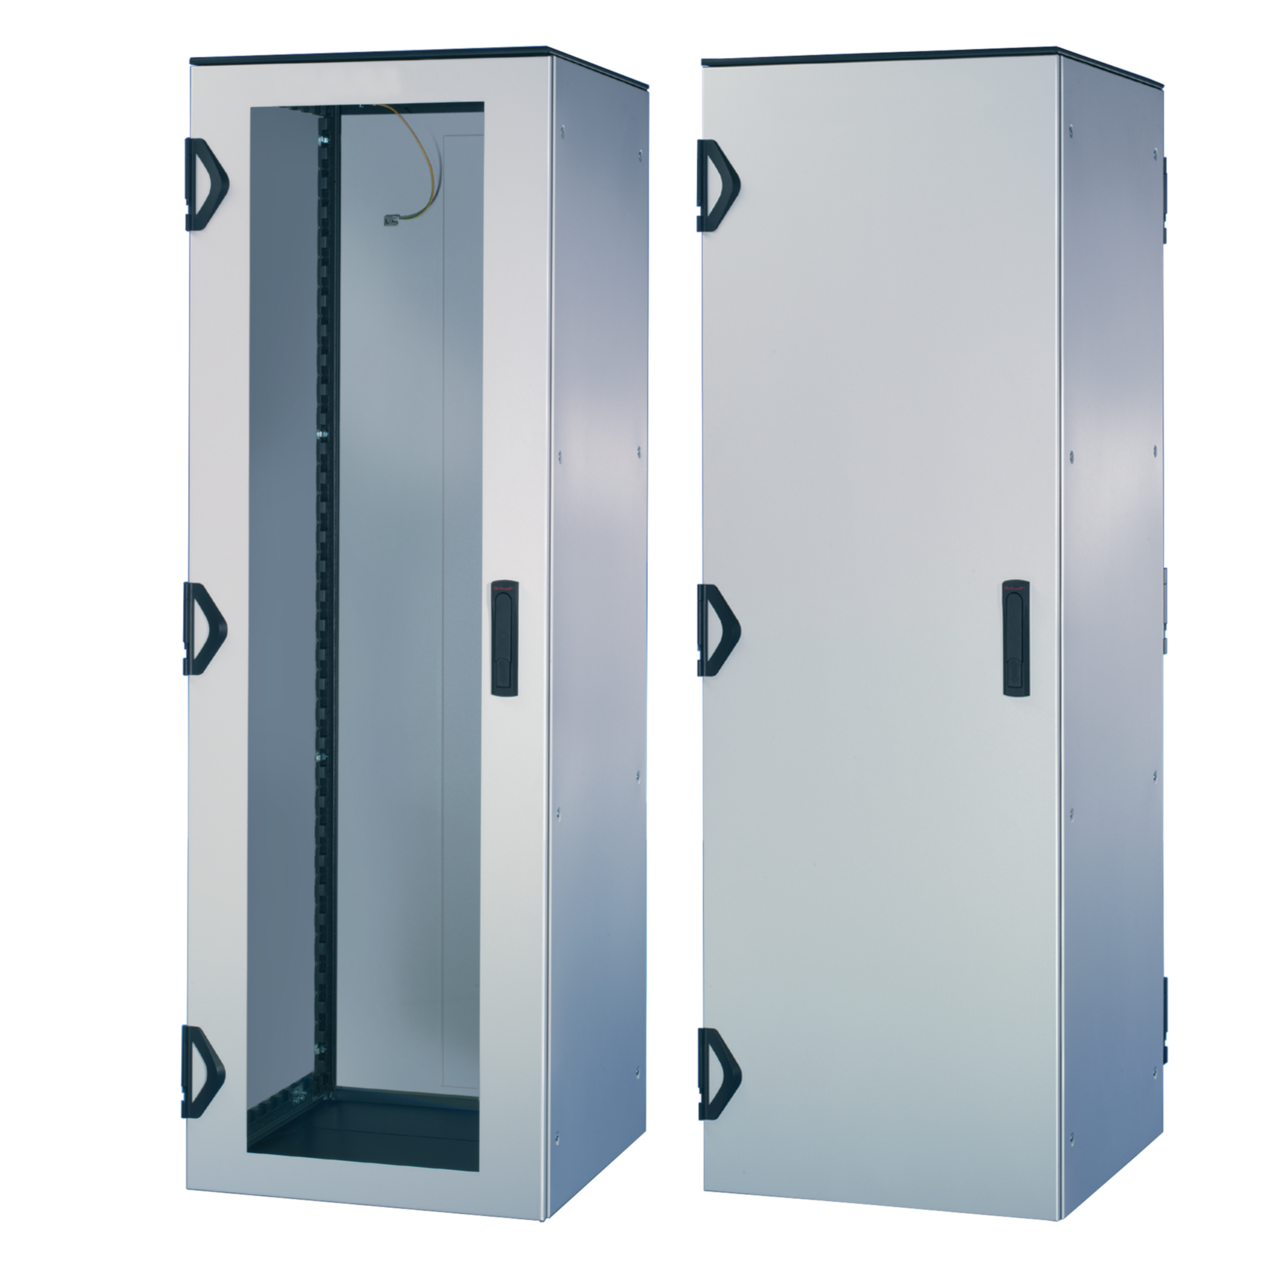 Image for VARISTAR IP 55 with glazed or steel front door from nVent SCHROFF | Europe, Middle East, Africa and India